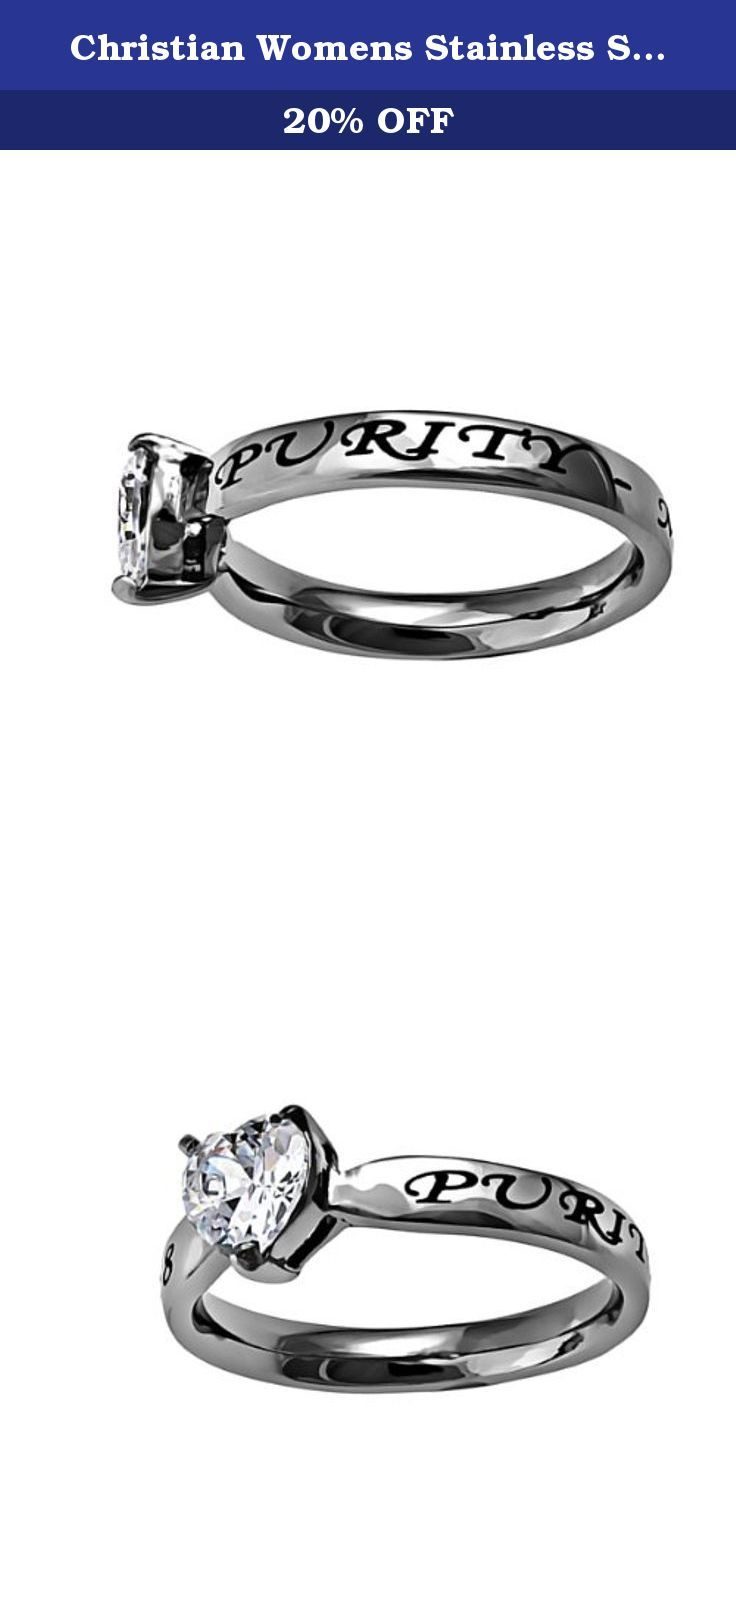 """Christian Womens Stainless Steel Abstinence 3mm Matthew 5:8 """"Purity"""" CZ Heart Solitaire Chastity Ring for Girls - Girls Purity Ring - Comfort Fit Ring Size 7. Stainless steel petite band with large heart cut cubic zirconium stone Engraved scripture with black enamel filling on back side of ring reads, """"Purity - Matthew 5:8""""."""